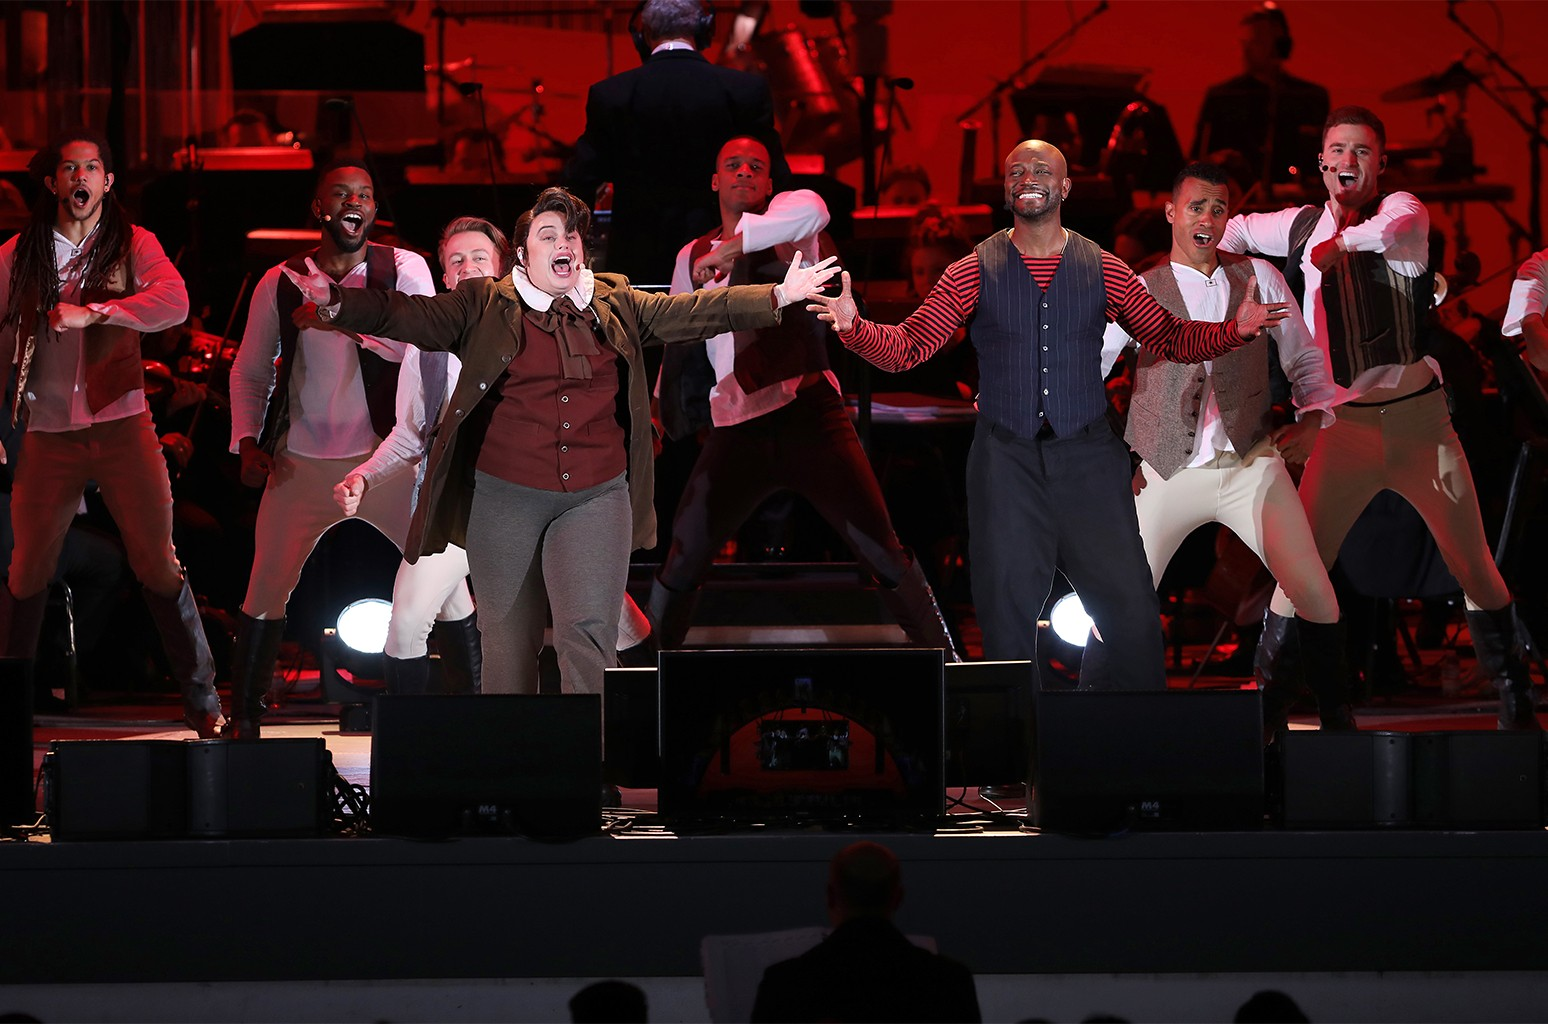 Rebel Wilson and Taye Diggs in Disney's Beauty and the Beast In Concert at the Hollywood Bowl, May 25, 2018